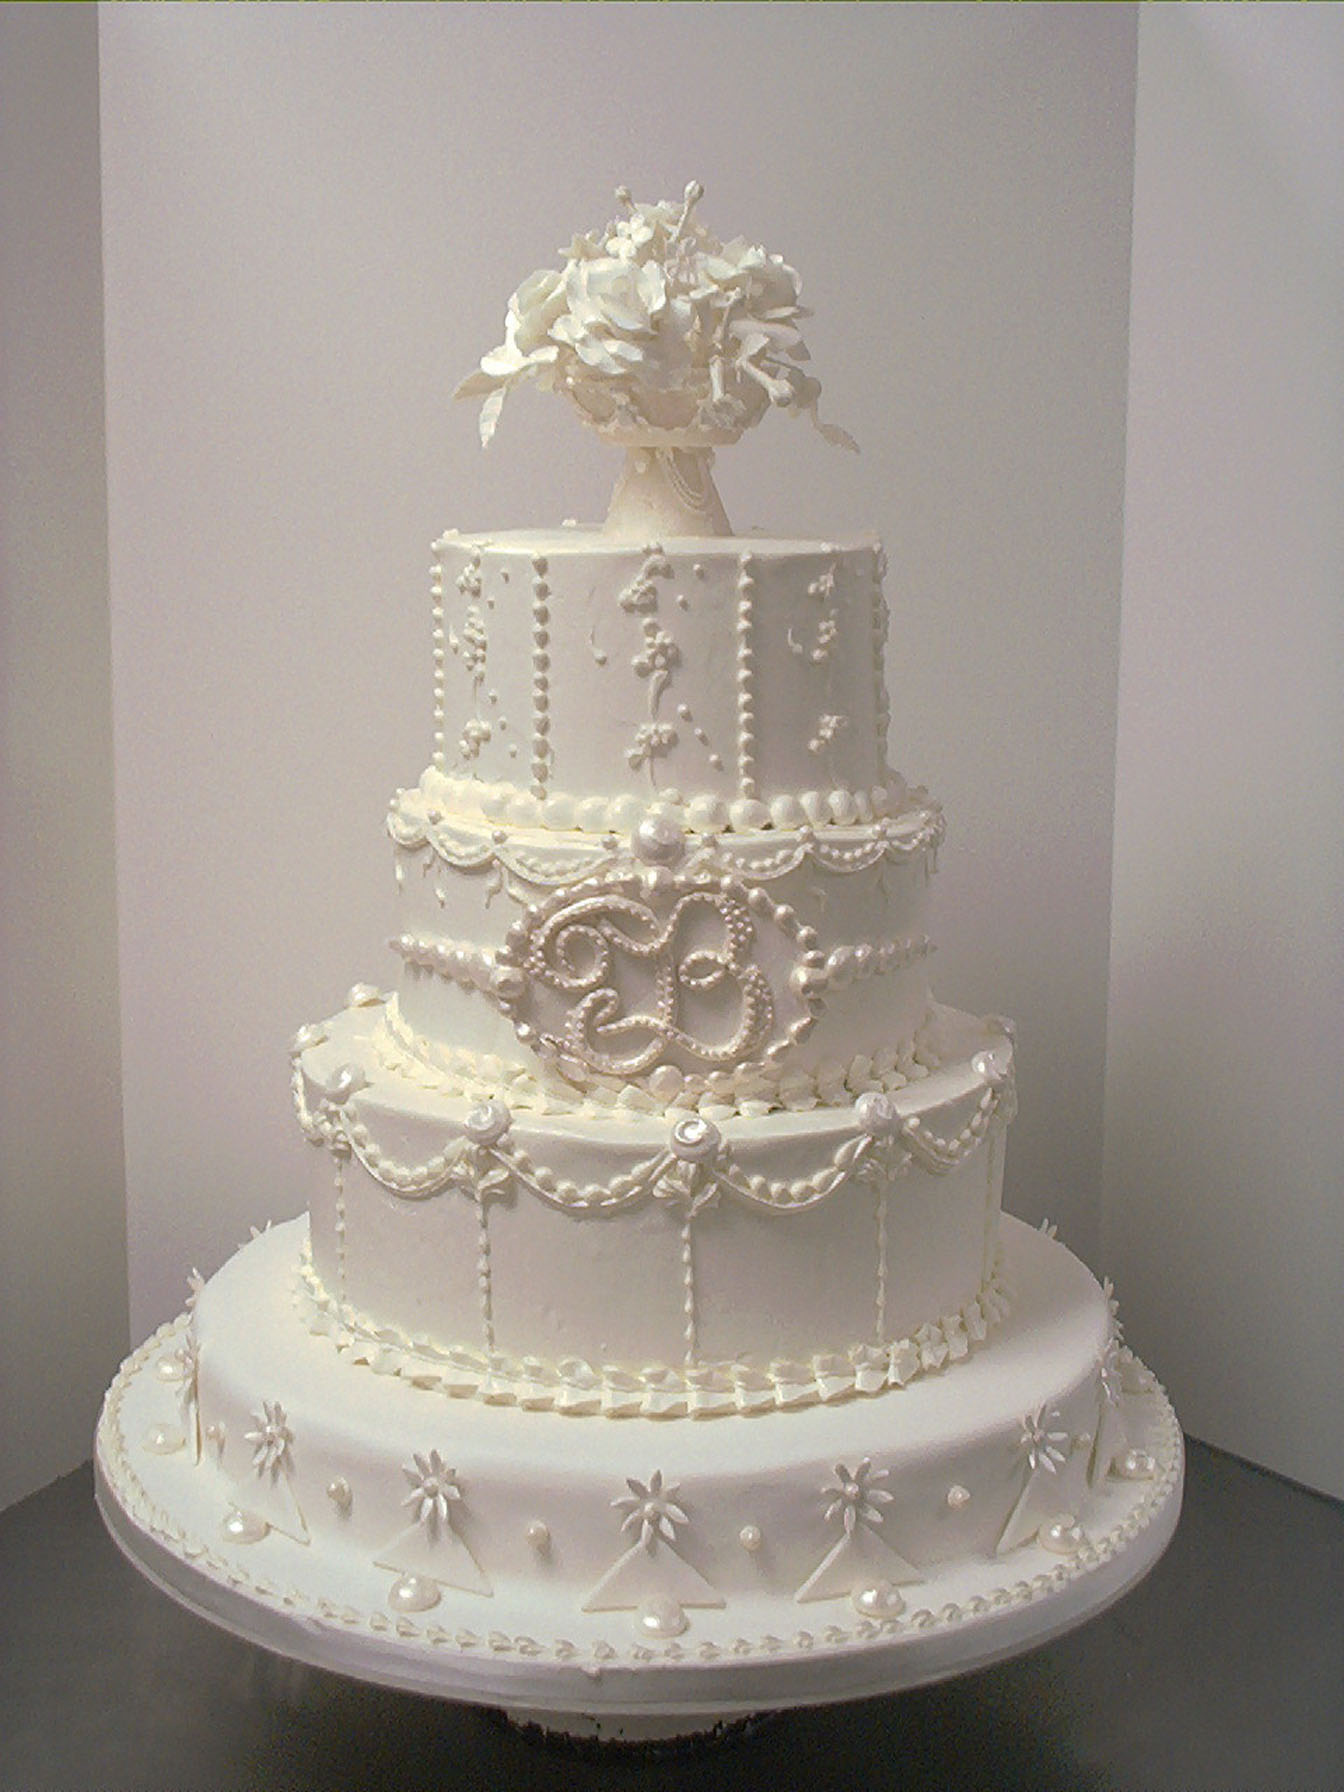 traditional white wedding cake designs ag w 9 wedding cake allaboutlemon all around in and 21215